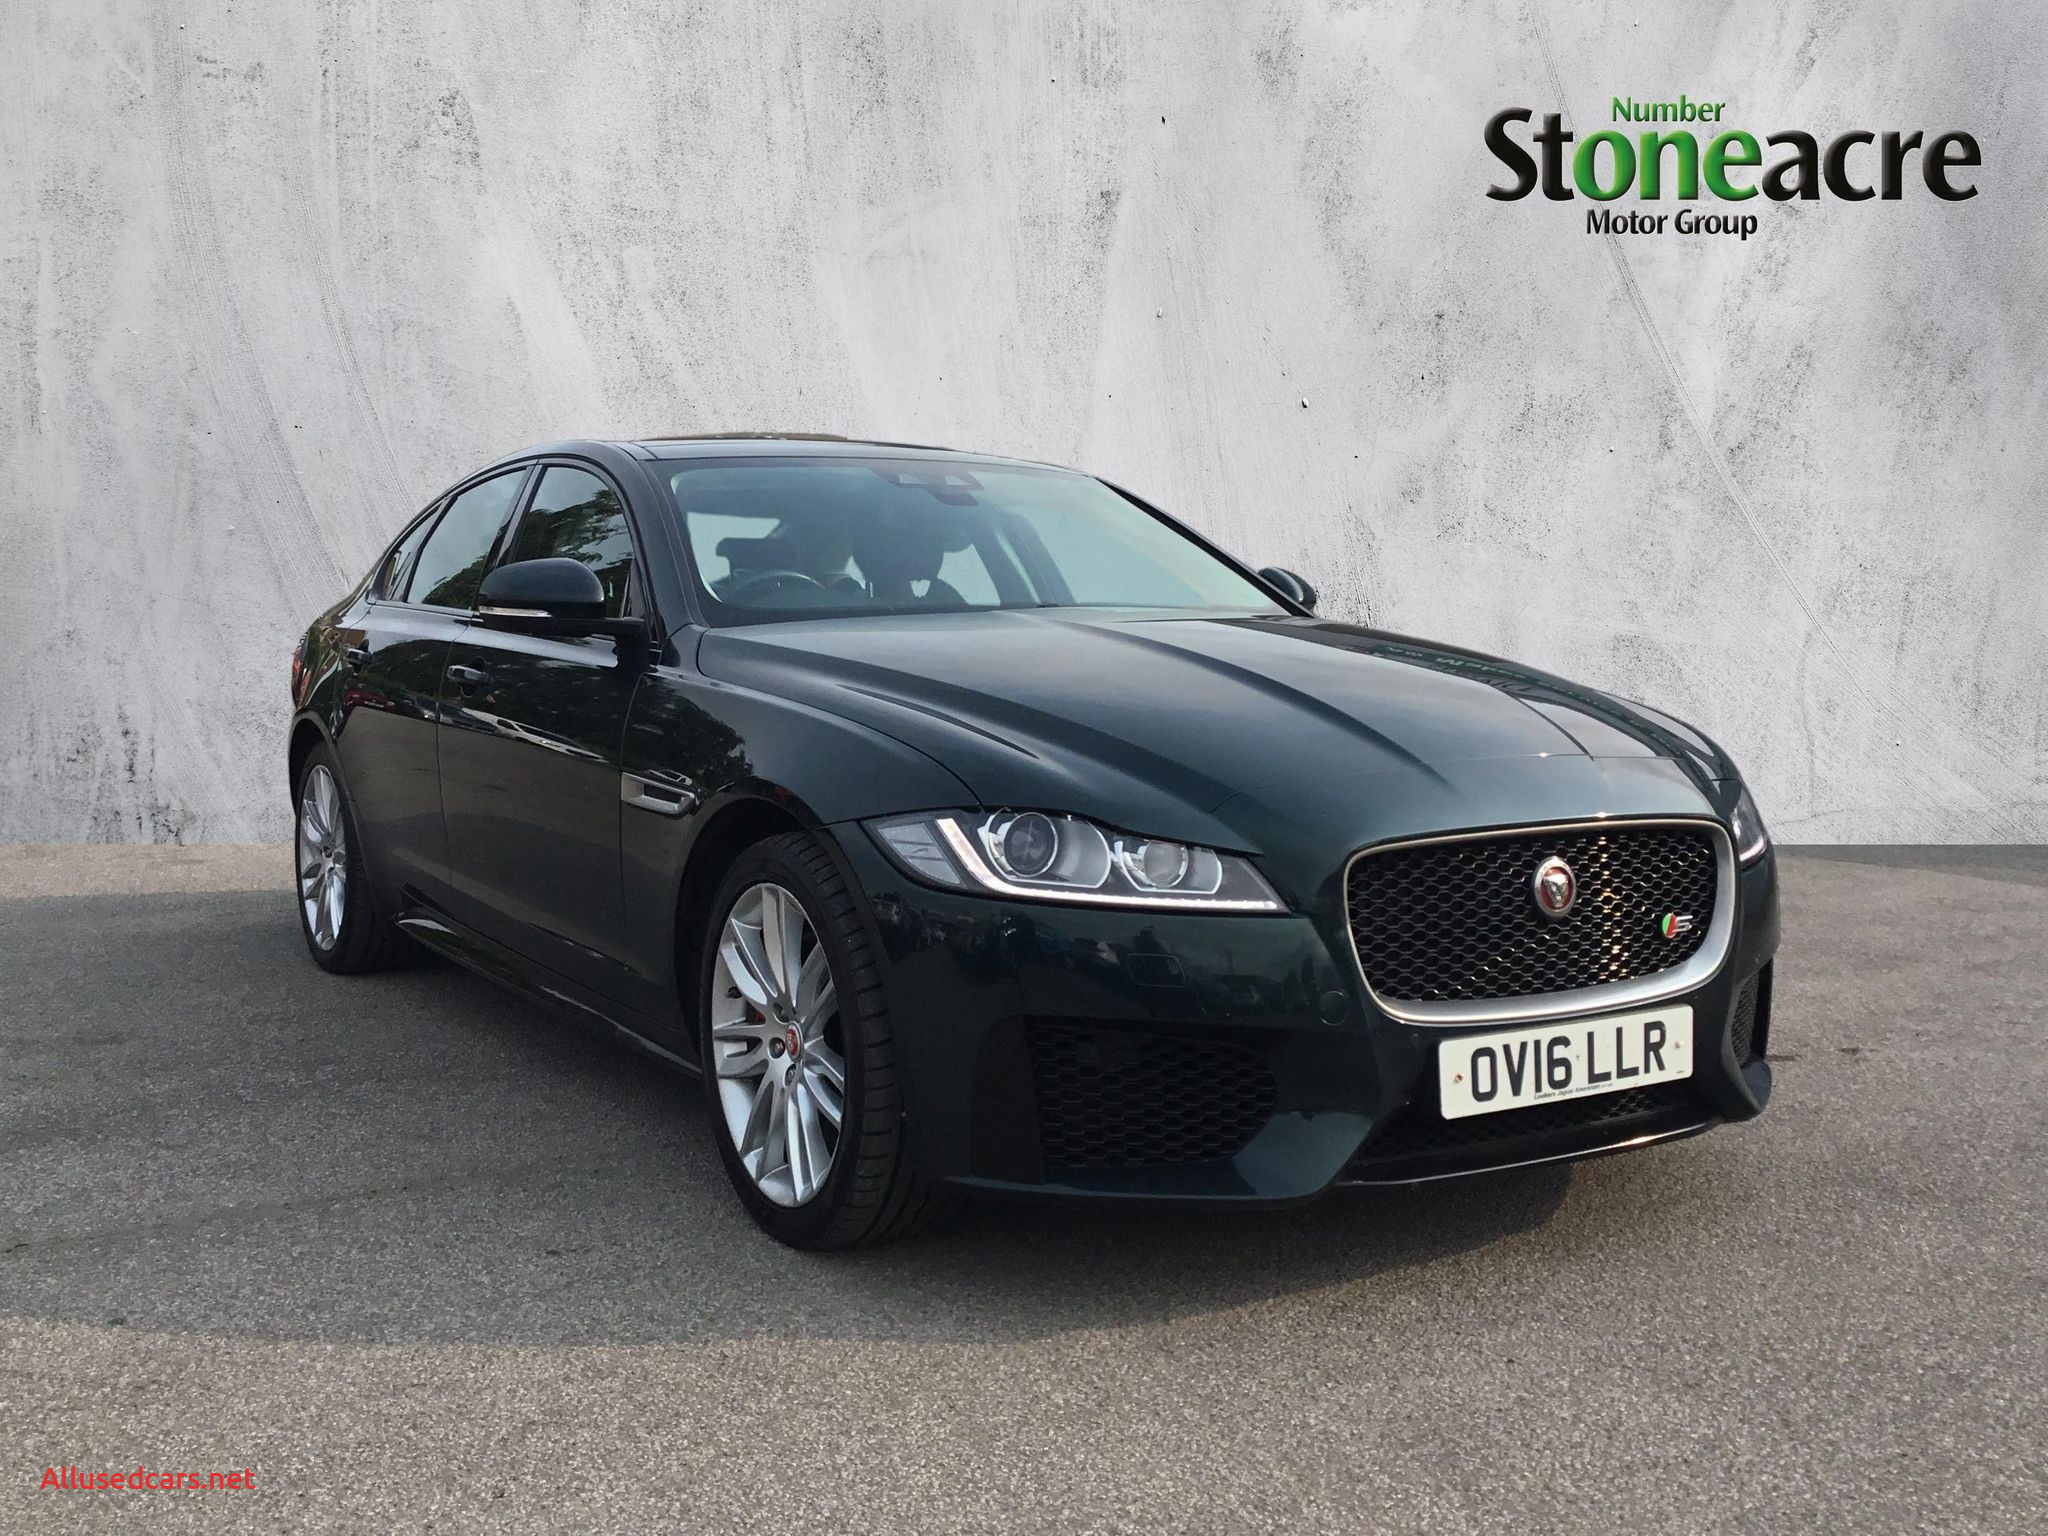 Used Cars for Sale 0 Apr Finance New Used Jaguar Xf for Sale Stoneacre